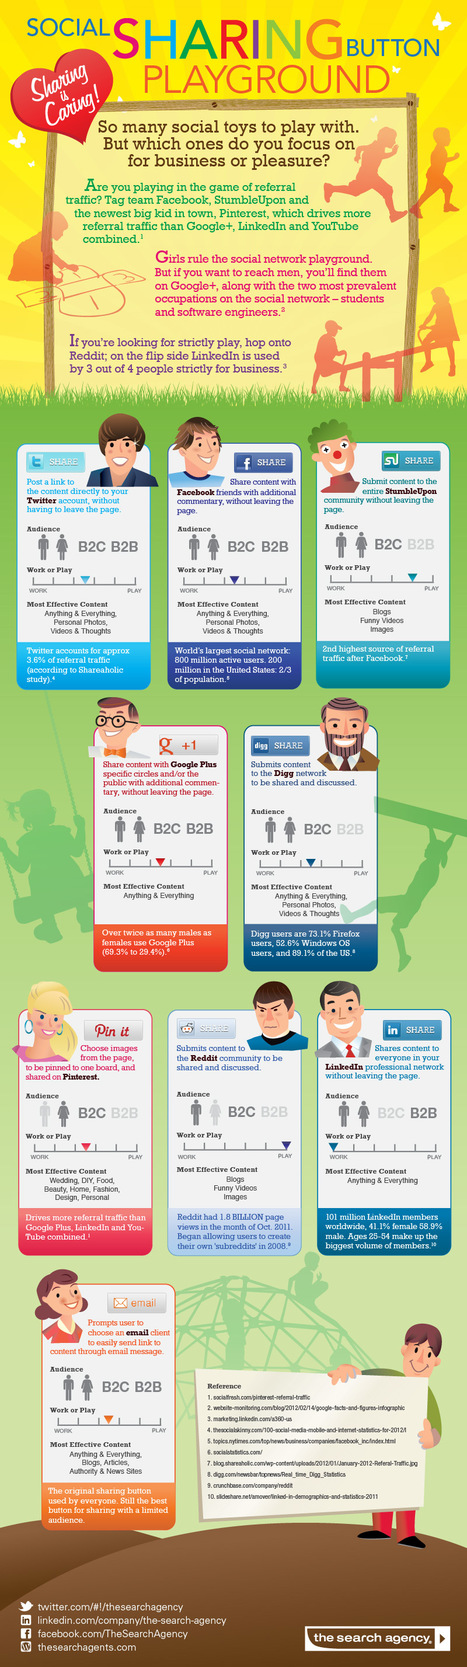 INFOGRAPHIC: Social Sharing Button Playground | The Search Agents | 1-MegaAulas - Ferramentas Educativas WEB 2.0 | Scoop.it